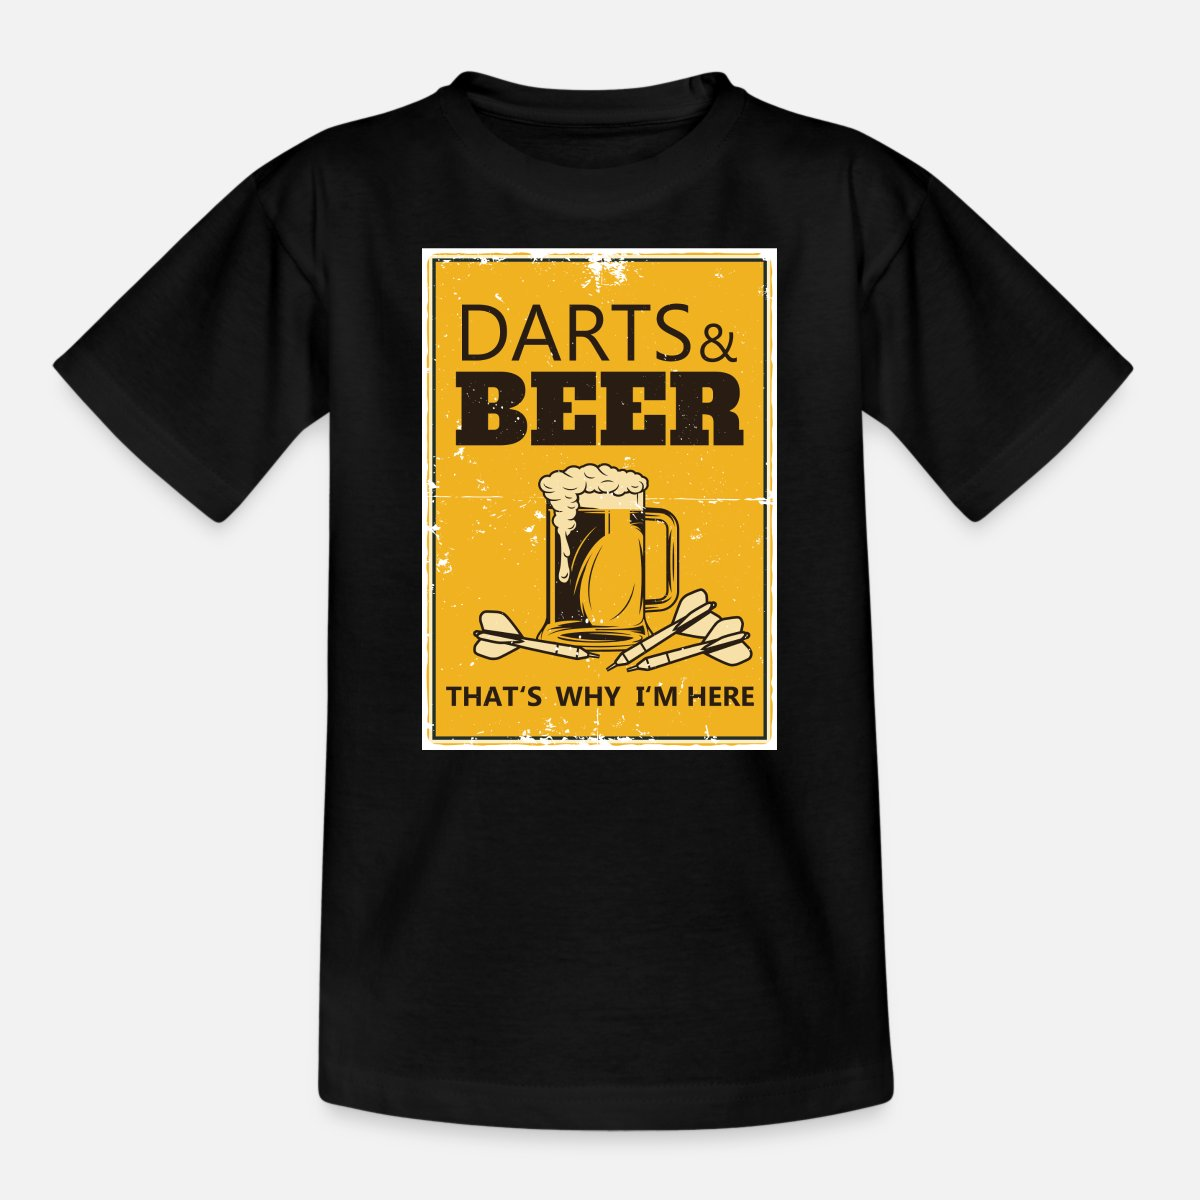 23+ Darts and beer thats why im here' Teenager T Shirt   Spreadshirt Image